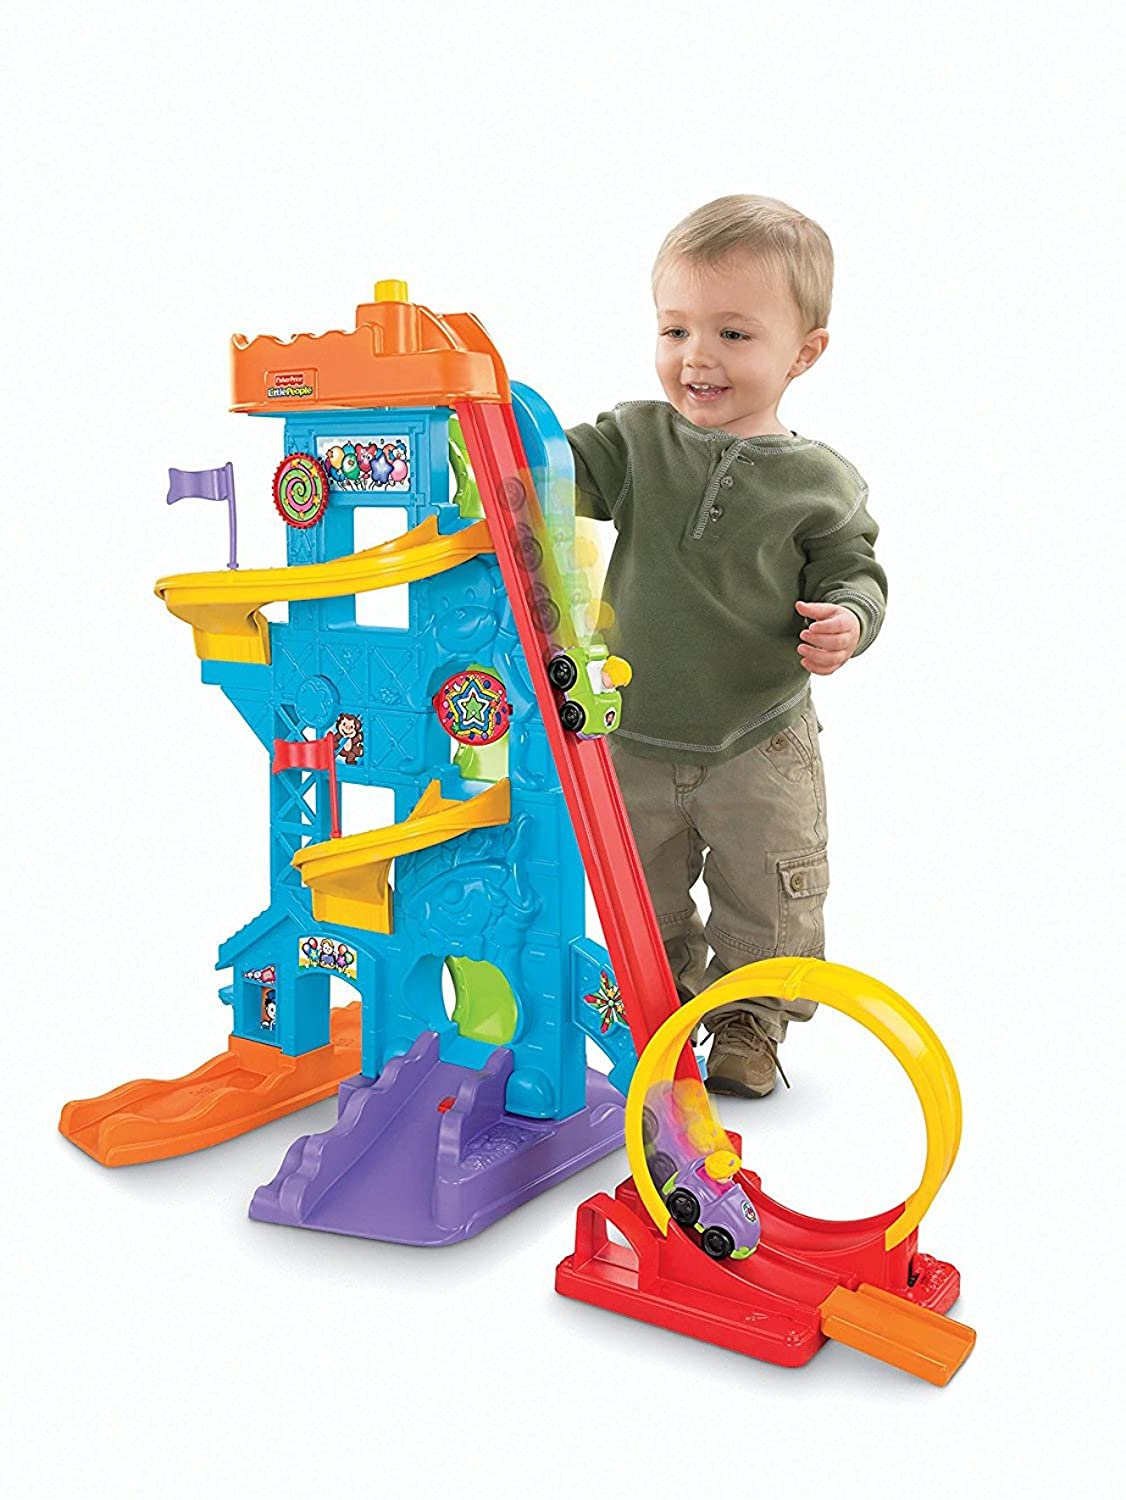 Toys For Toddlers One To Three Years : Best gifts for year old boys in itsy bitsy fun